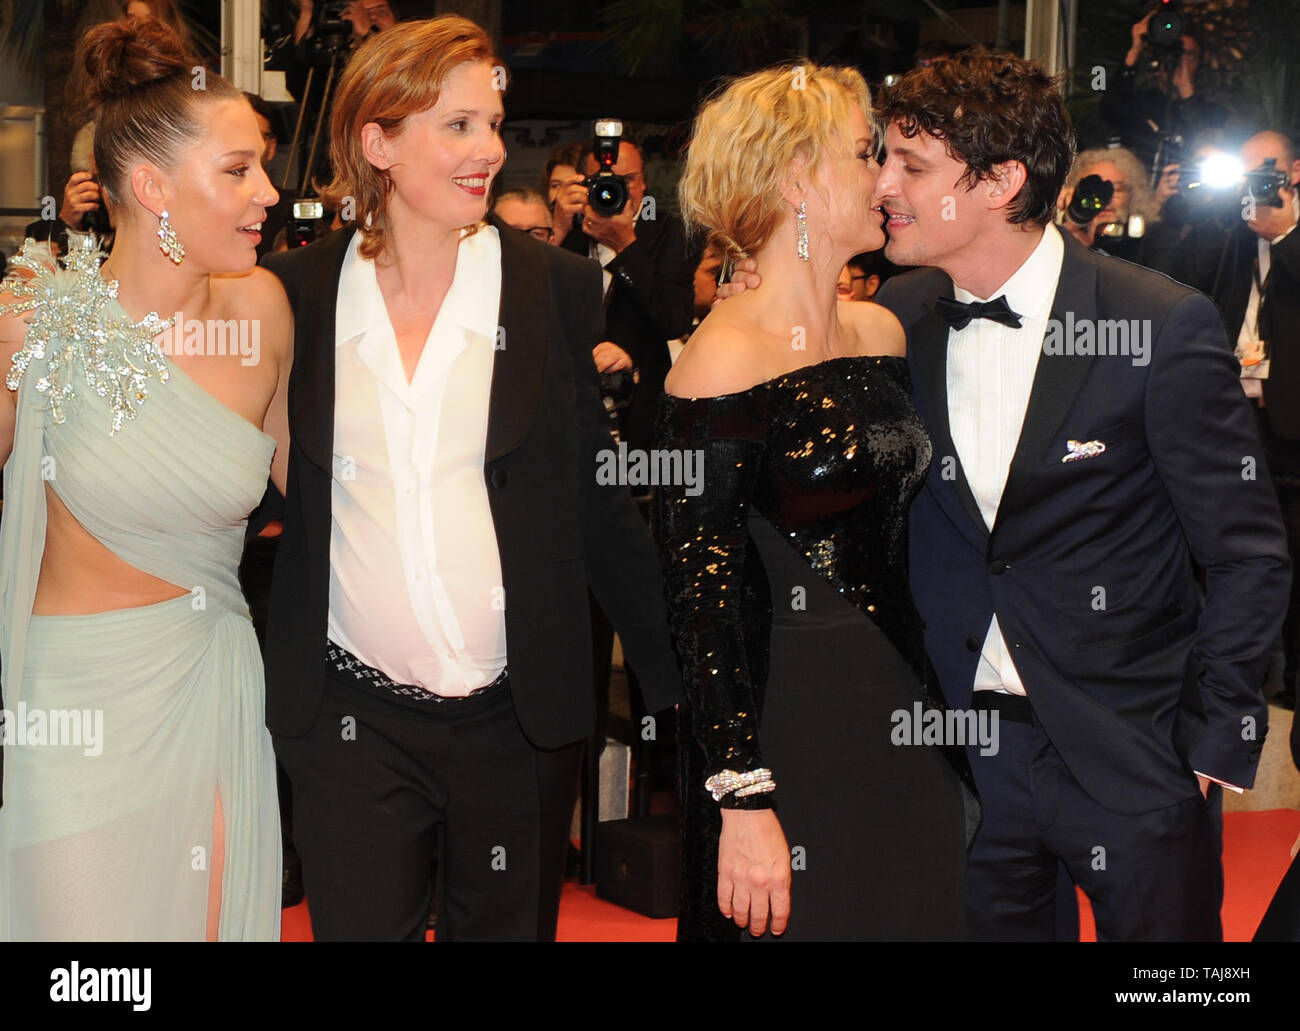 Cannes France 24th May 2019 Justine Triet L R Adele Exarchopoulos Virginie Efira And Niels Schneider Attend The Screening Of Sibyl During The 72nd Annual Cannes Film Festival At Palais Des Festivals